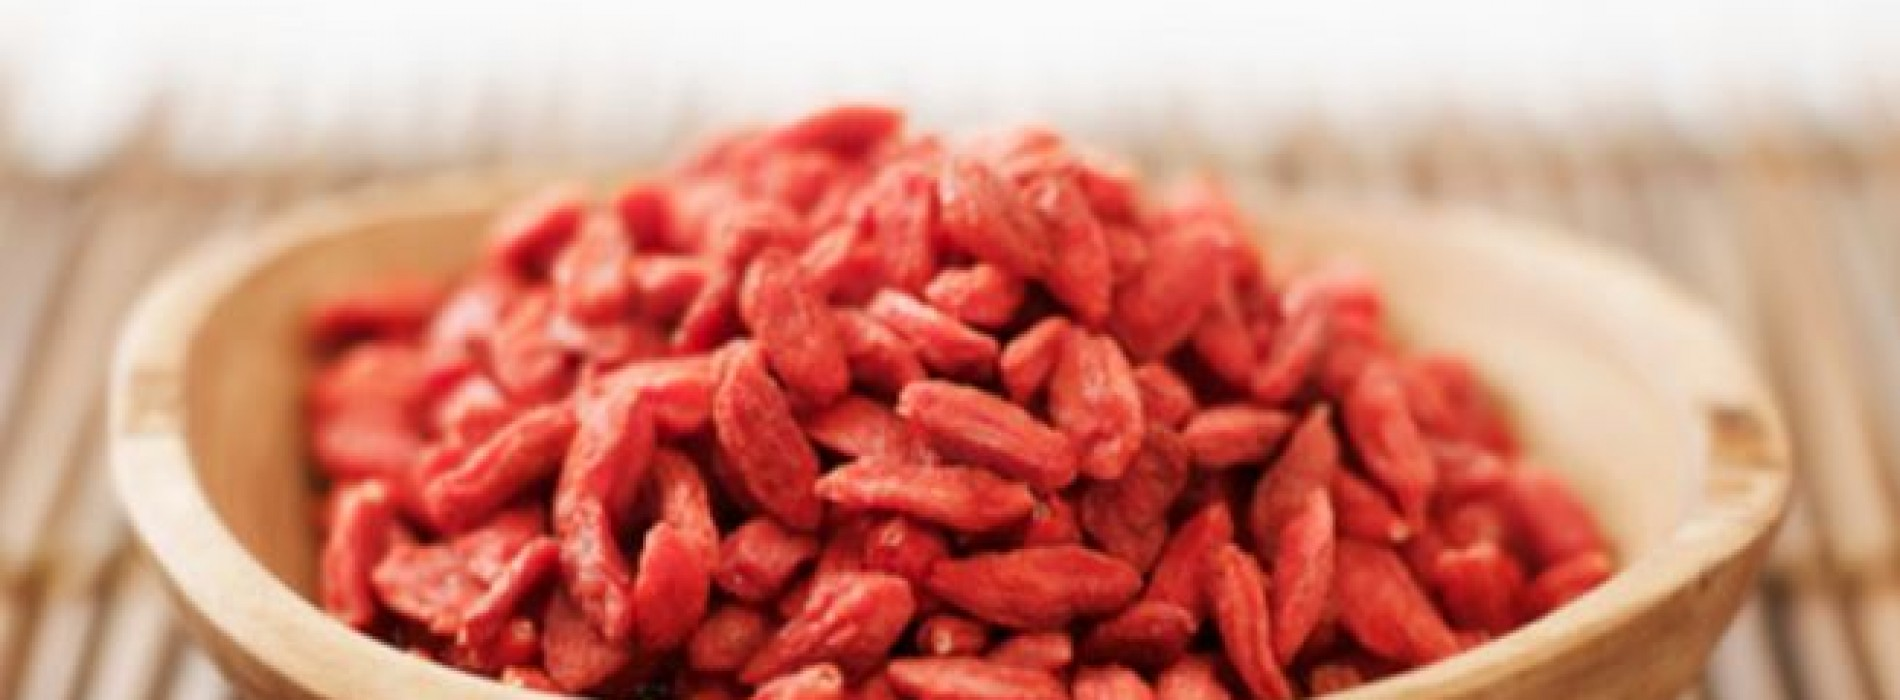 Getting the rich benefits of health through goji berries nutrition